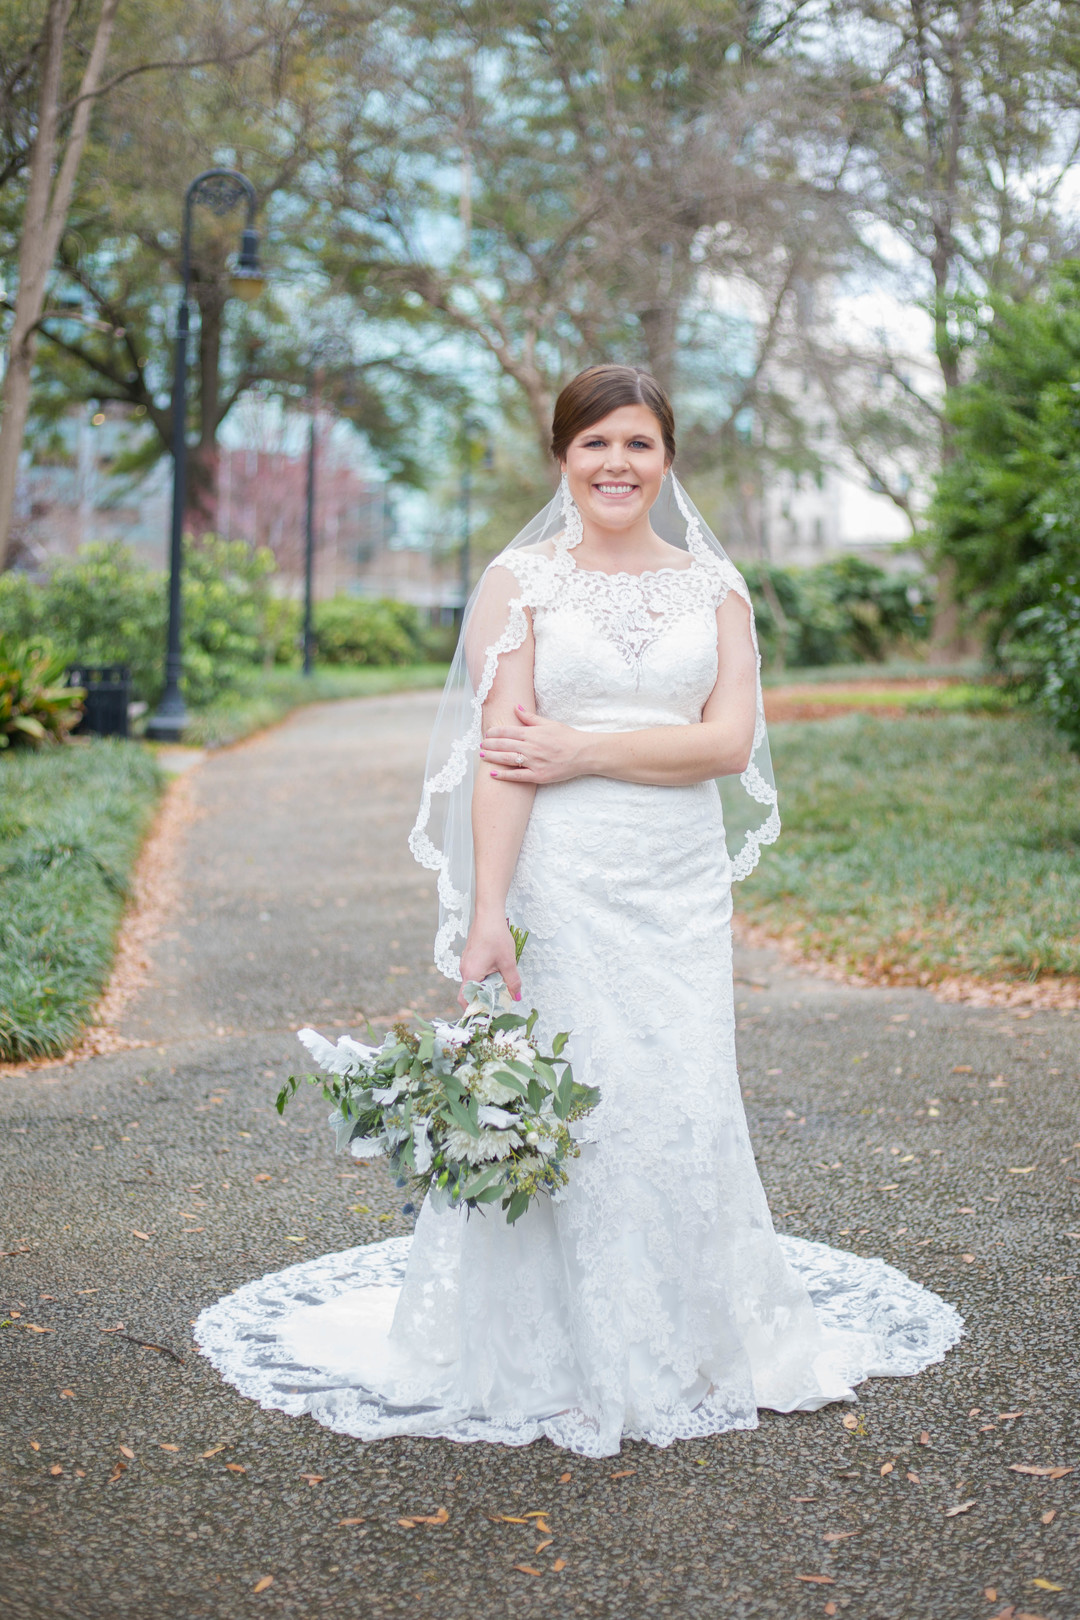 Ali's Bridal Portraits at the South Carolina State House | Palmetto State Weddings